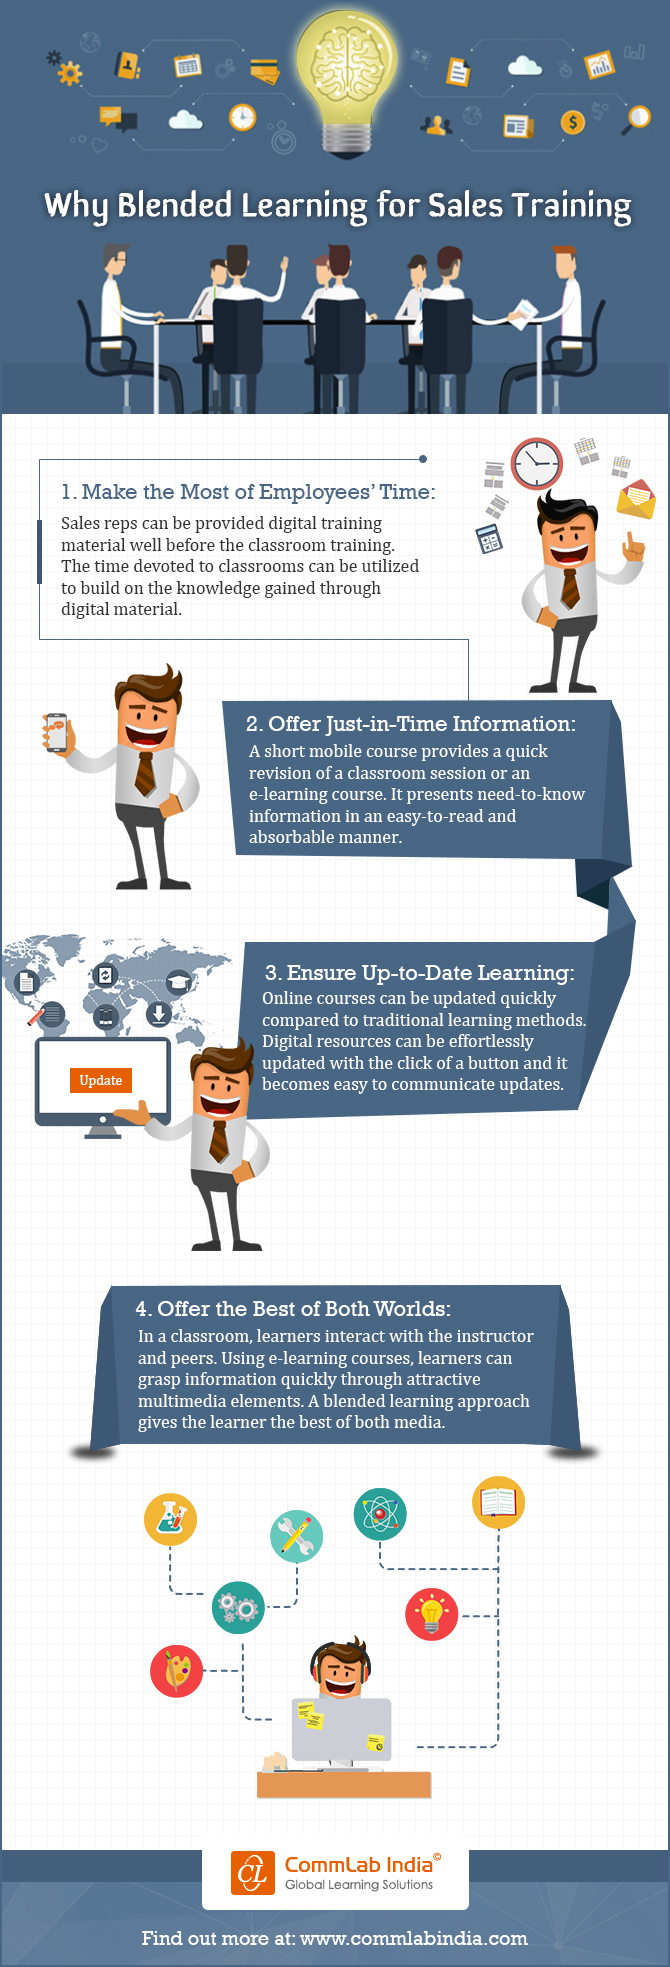 Why Blended Learning for Sales Training [Infographic]